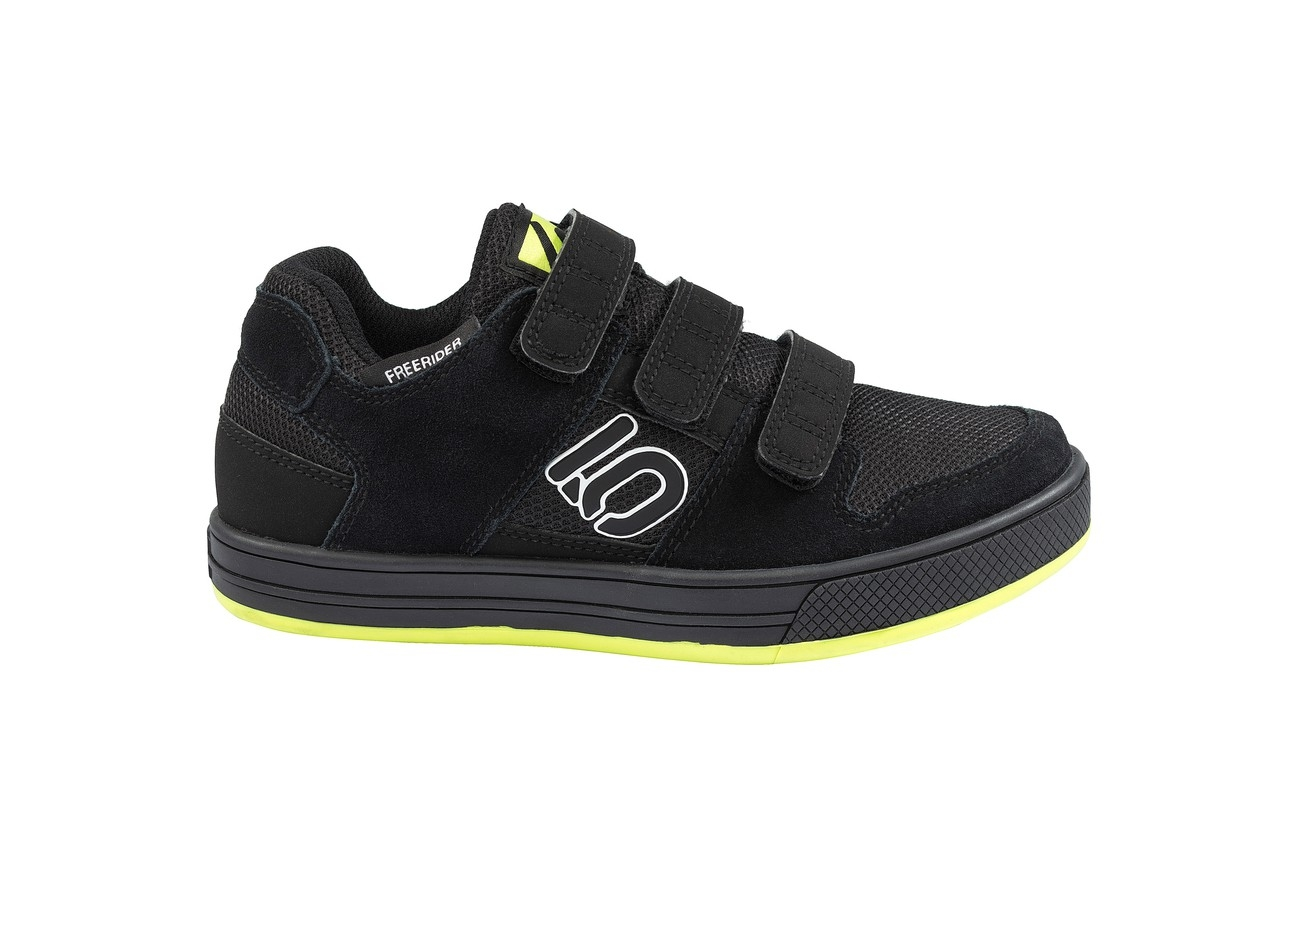 Chaussures Five Ten Freerider VCS Enfant Noir/Jaune - UK-1 (33)